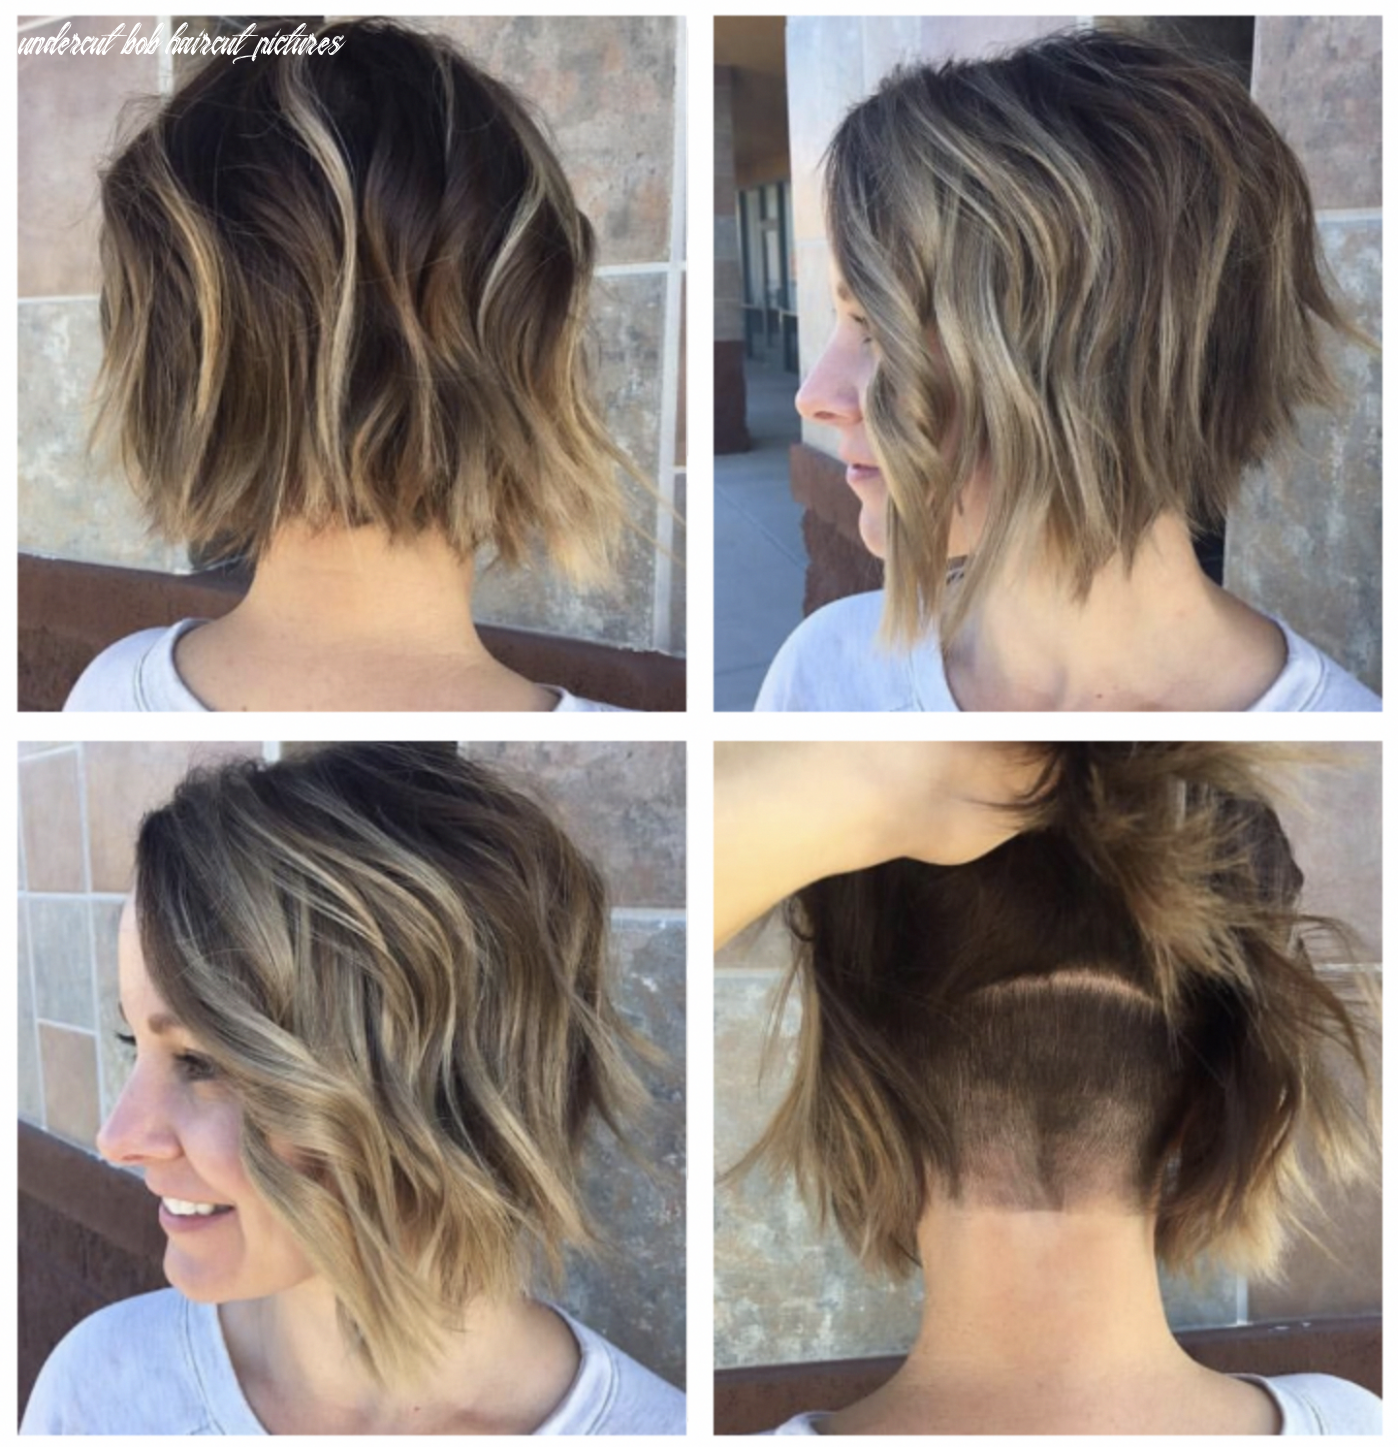 8 messy bob hairstyles for your trendy casual looks | bob